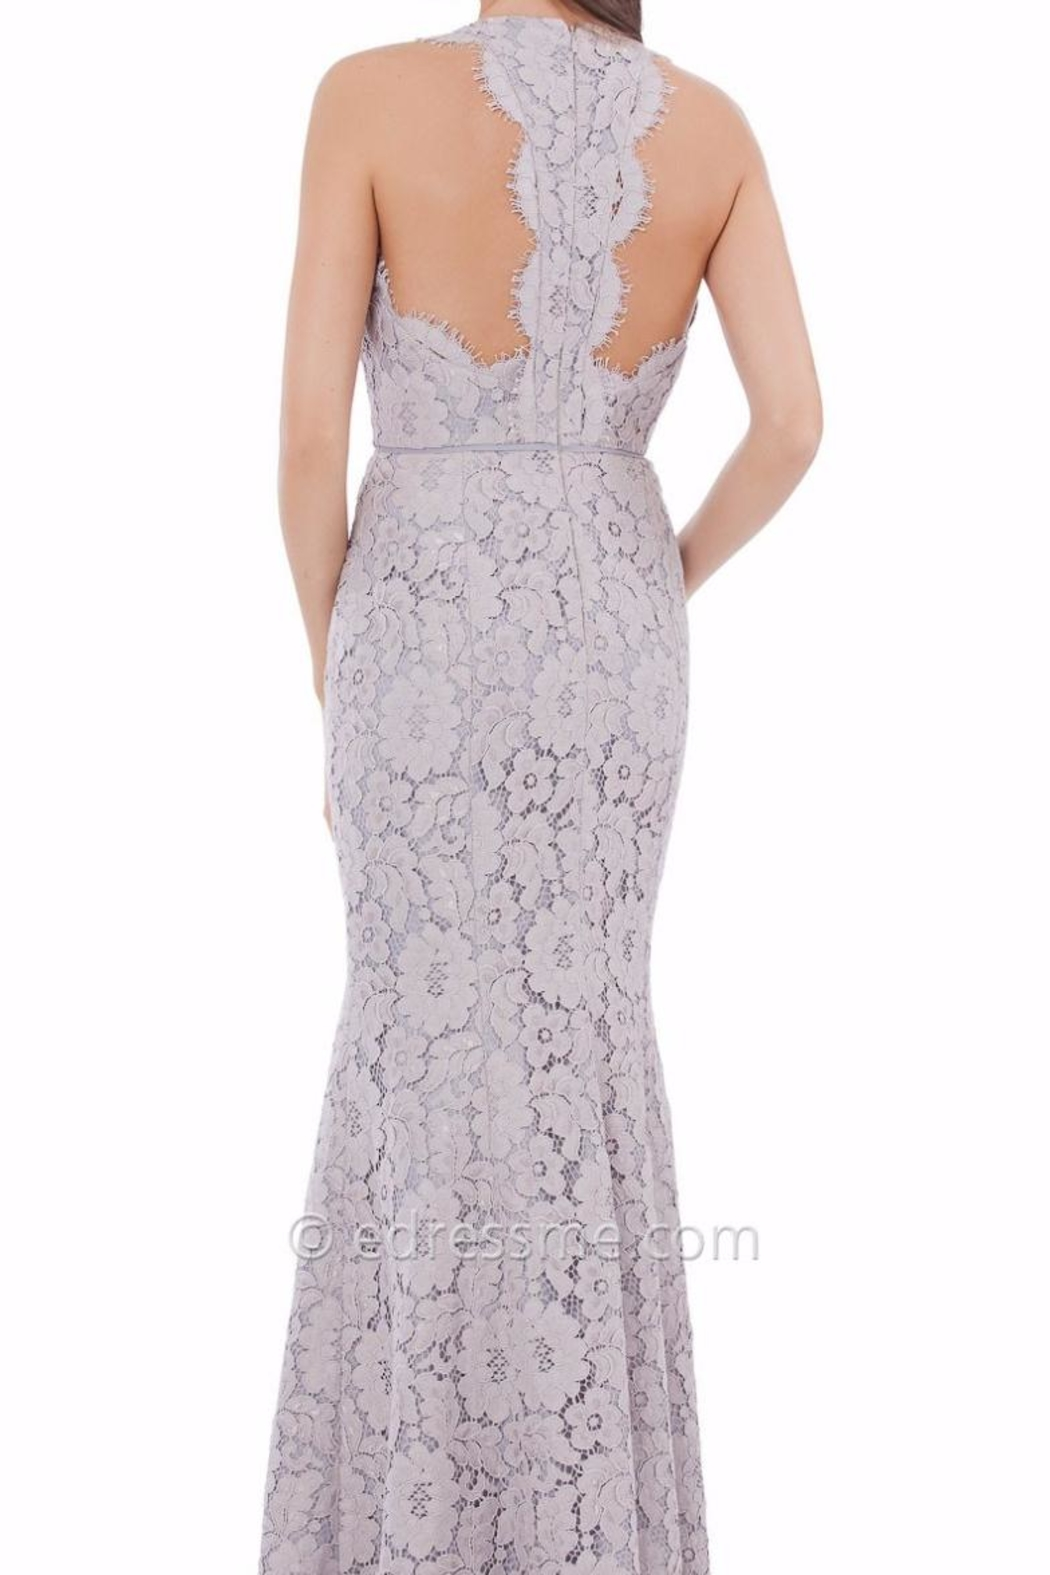 JS Collection Floral Lace T-Back Dress - Front Full Image